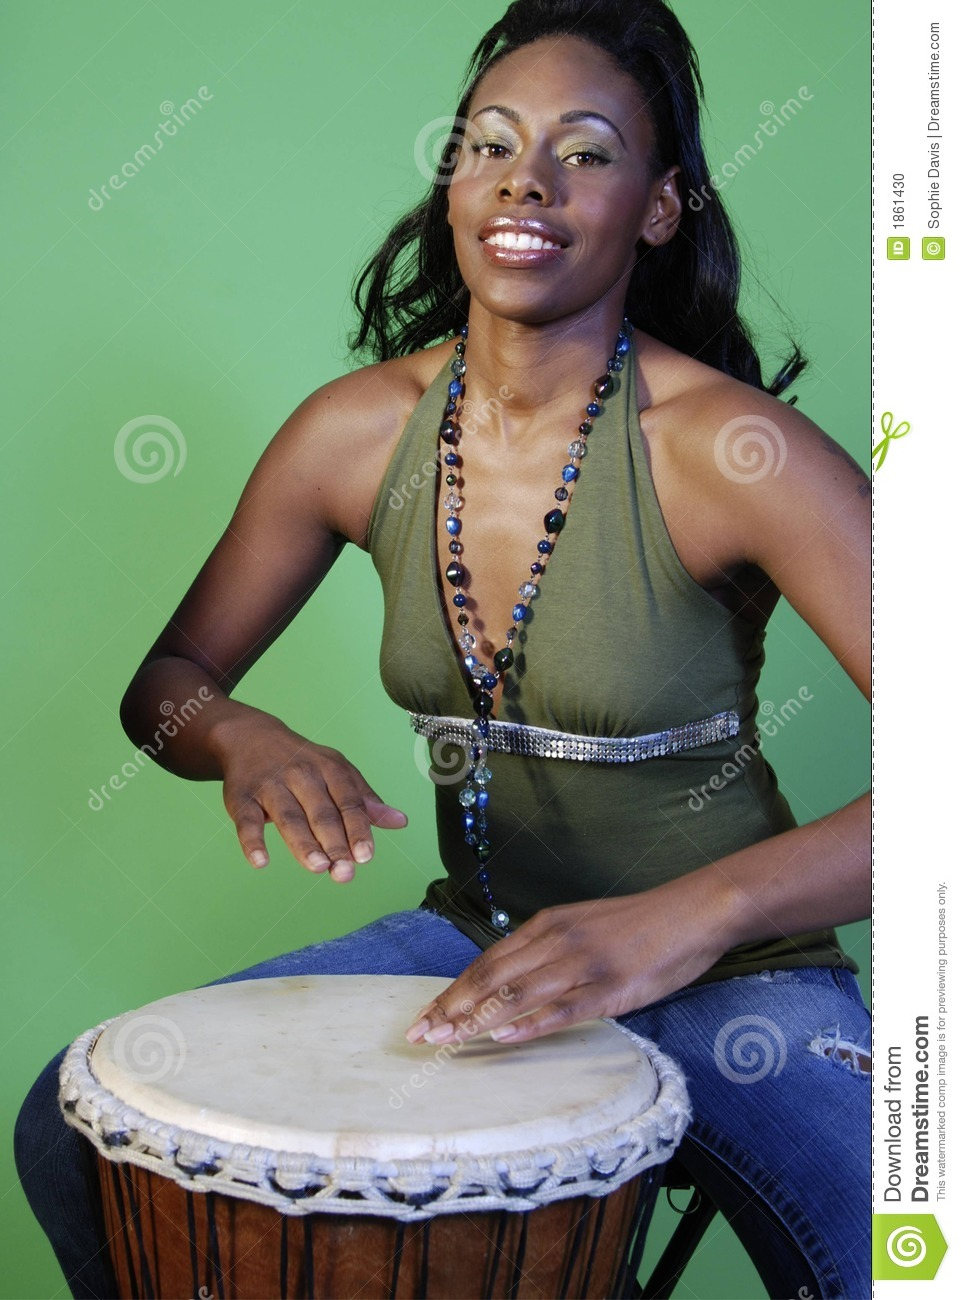 Beautiful African-American Woman Playing Drums Stock Photo -2462